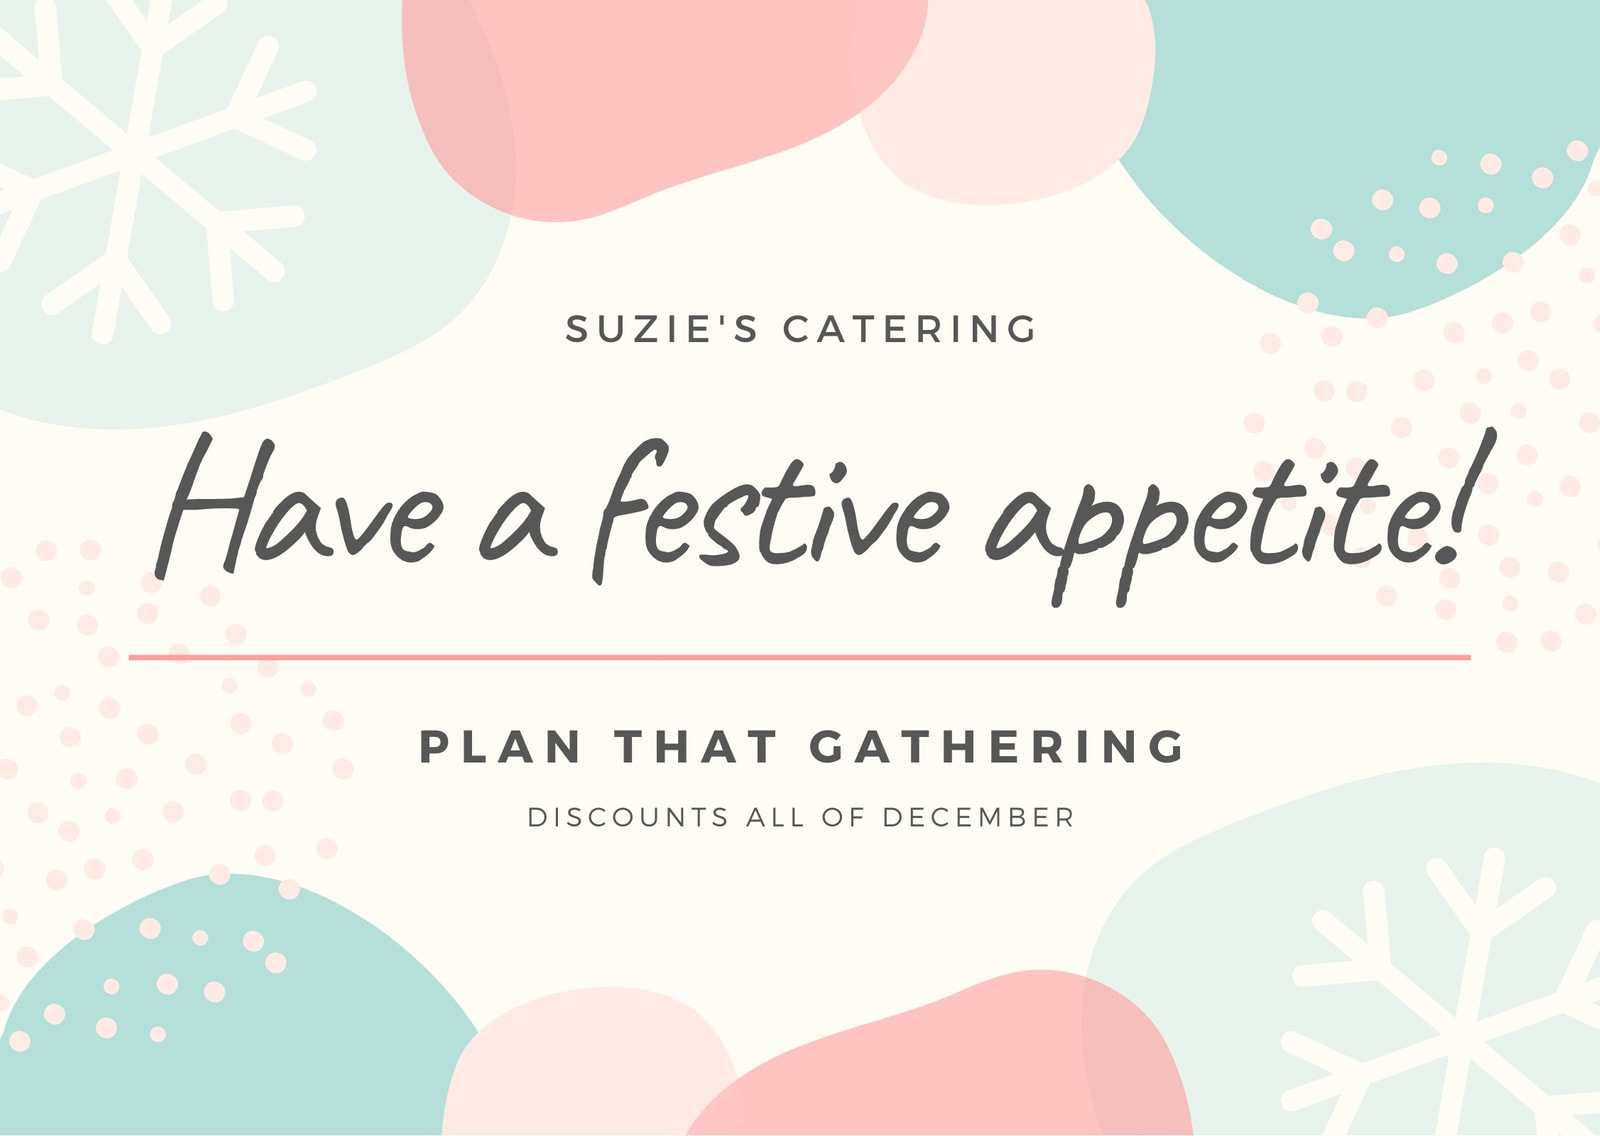 Pastel Pink and Blue Colorful Festive Catering Postcard